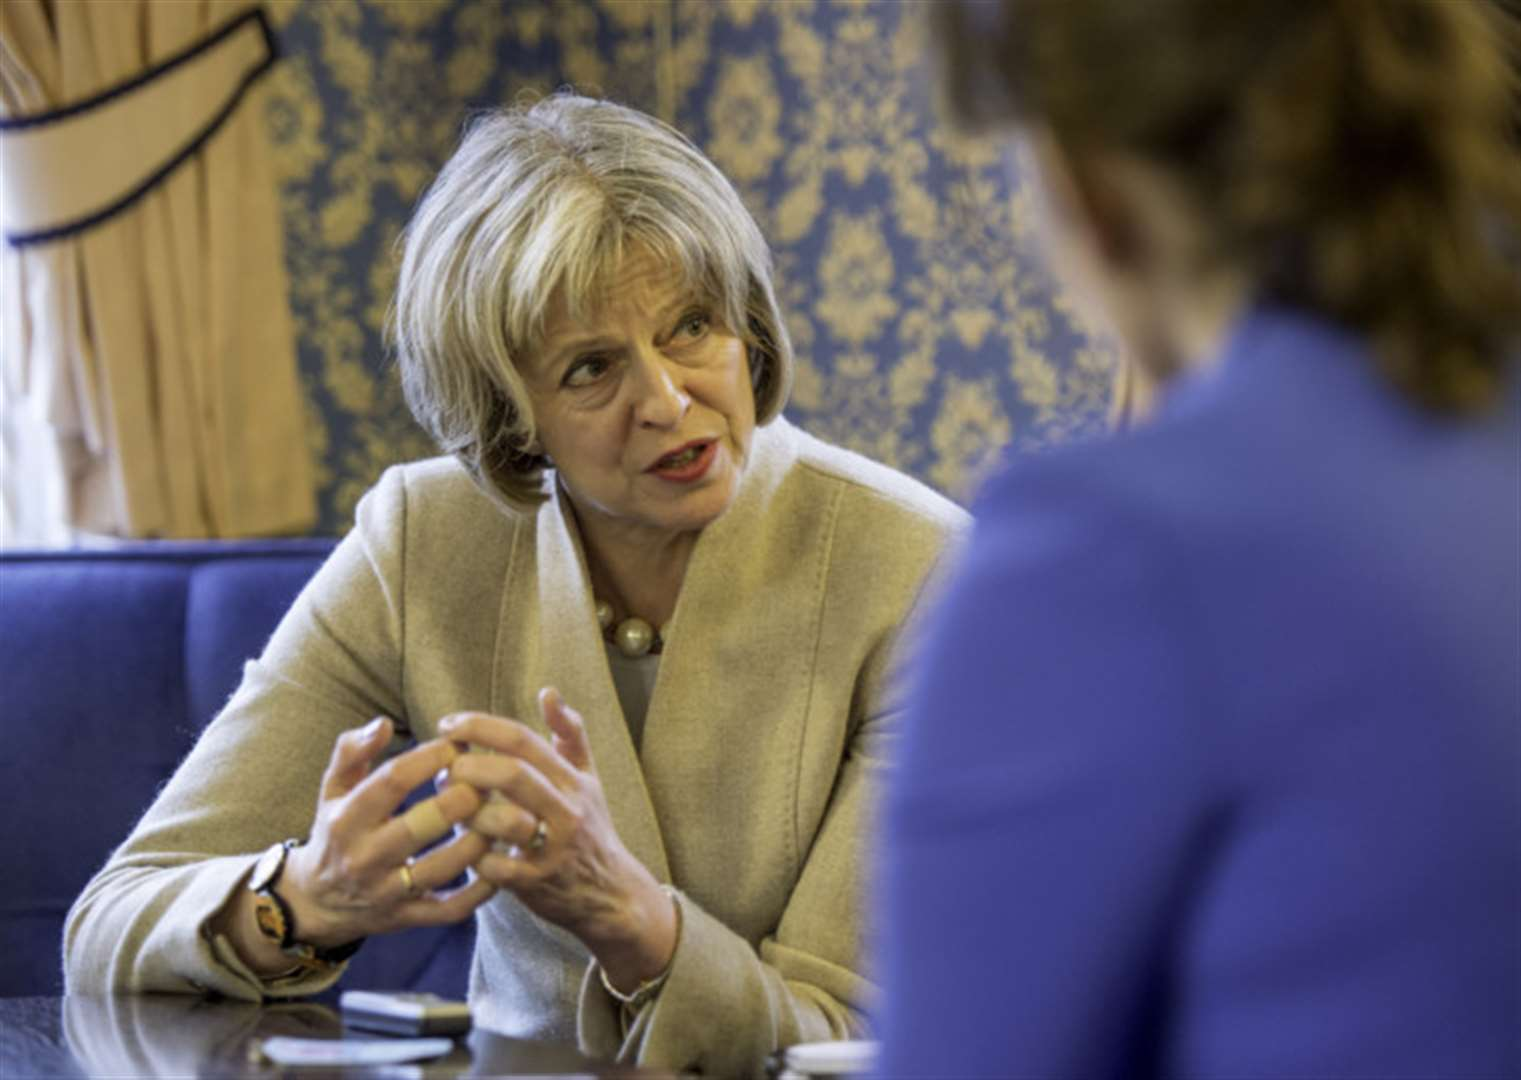 EXCLUSIVE INTERVIEW: Home Secretary Theresa May vows: We'll get tough on immigrants